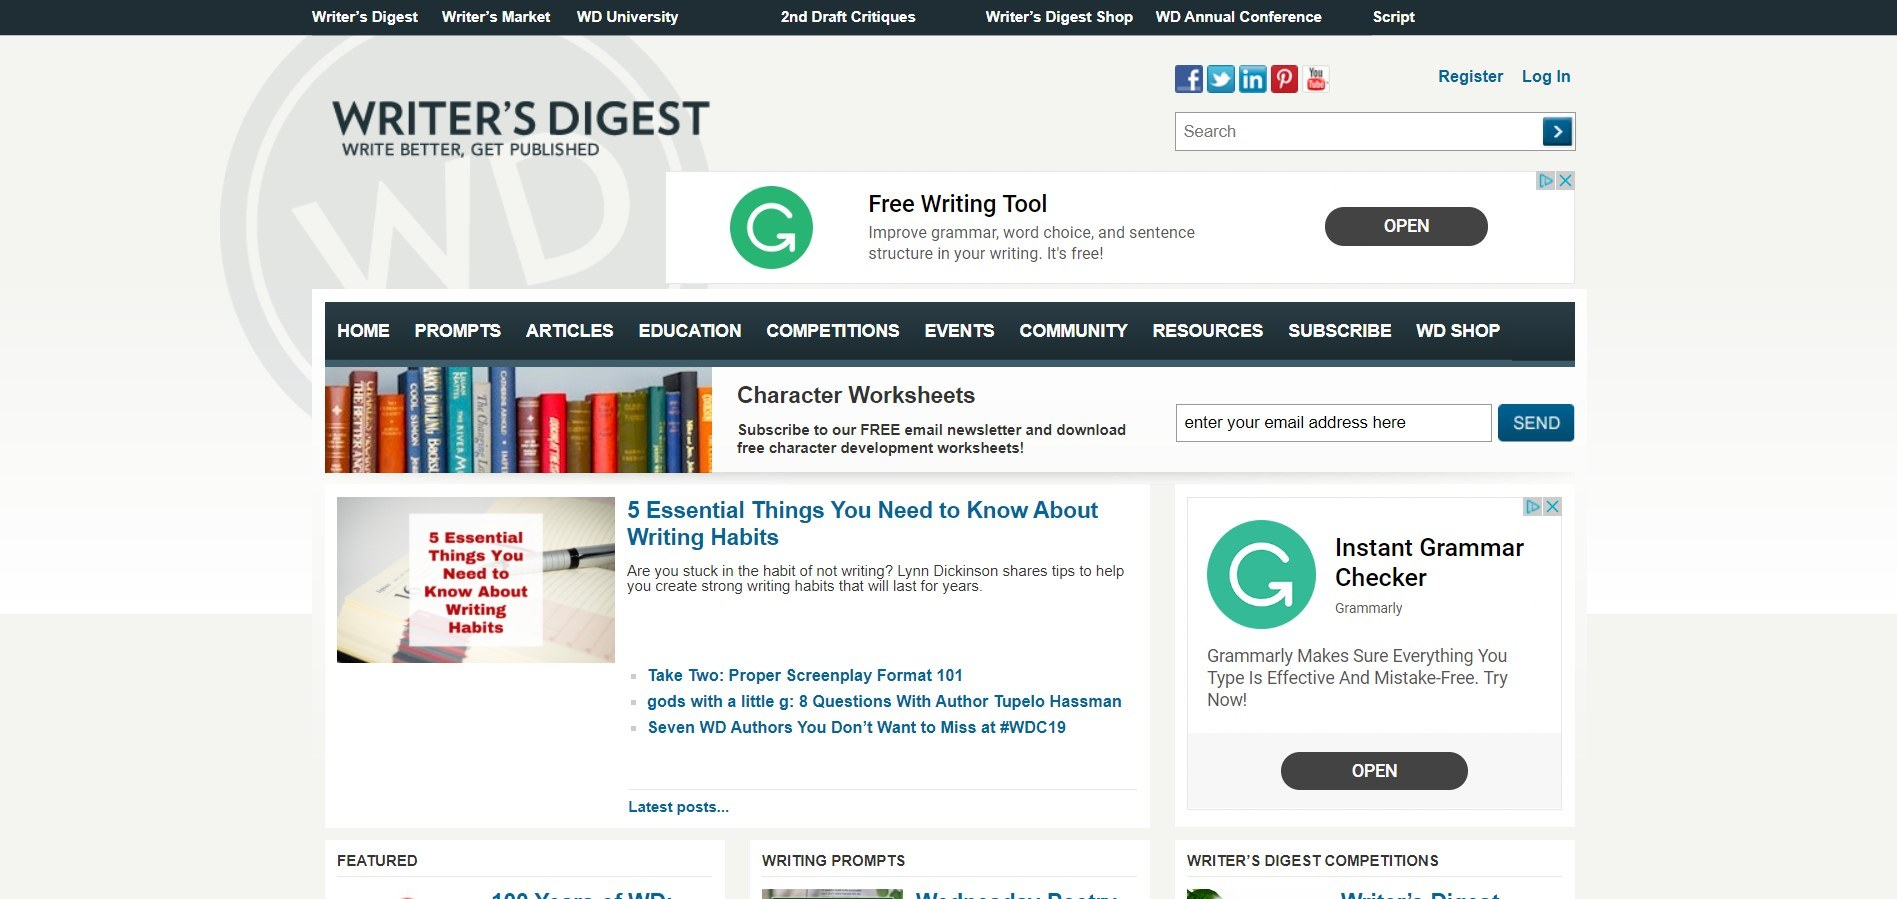 This basic screenshot has a small photo of a shelf of books as well as advertisements for Grammarly and blue and black text on the page.